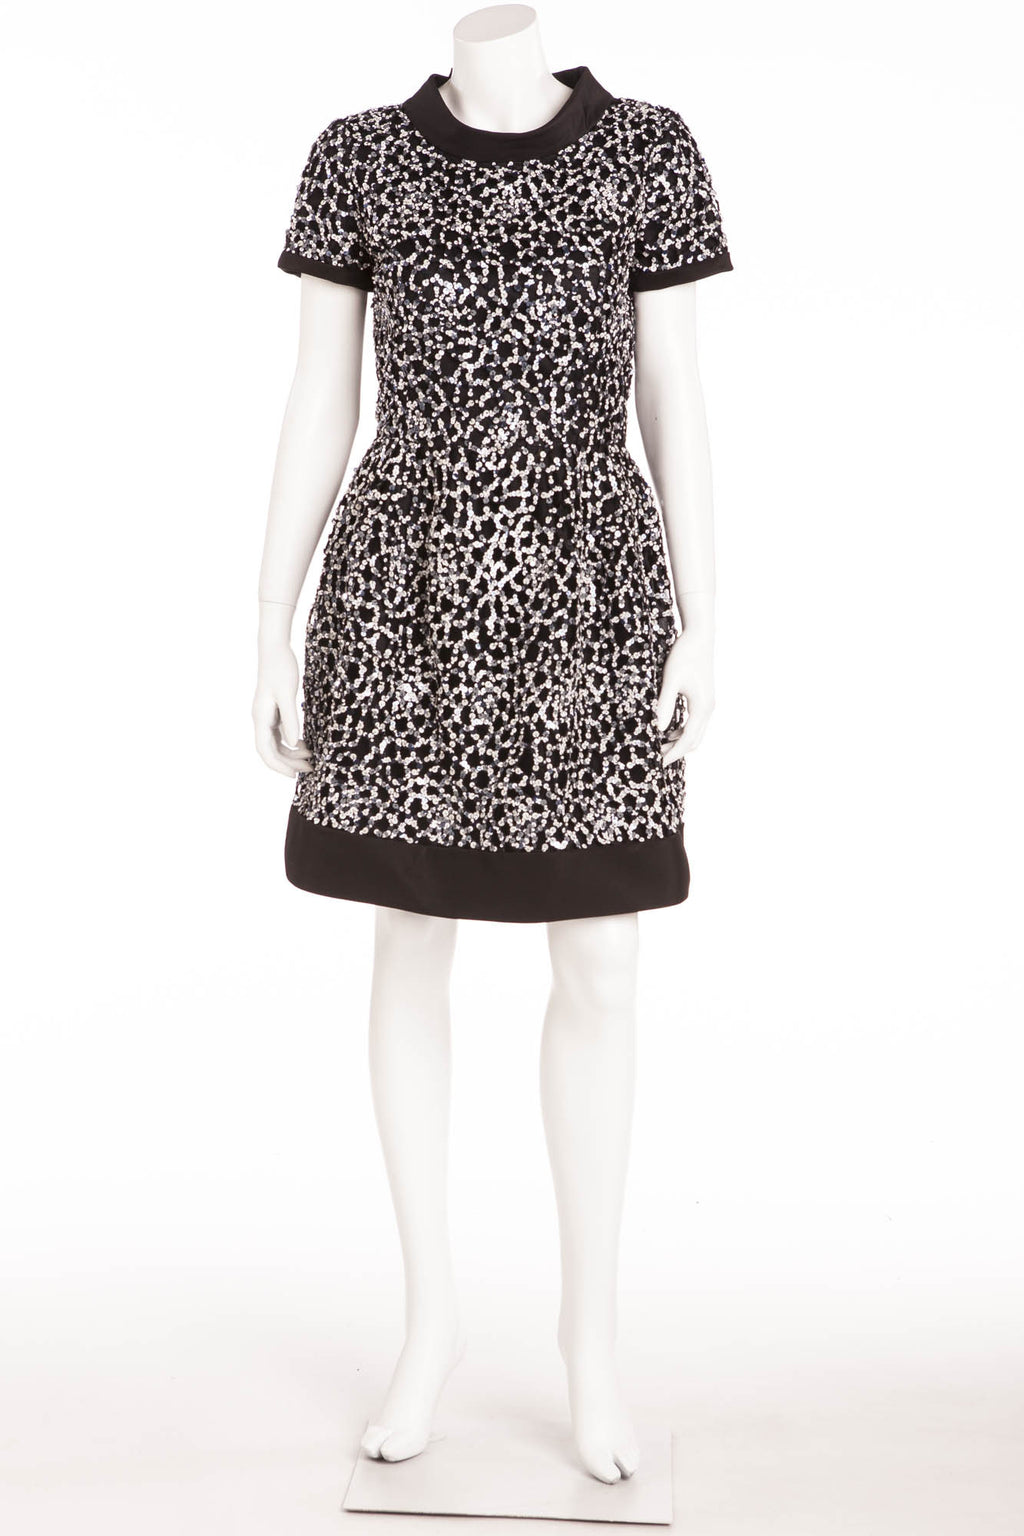 Oscar De La Renta - Camellia Sequined Silk Mini Dress NWT - 8